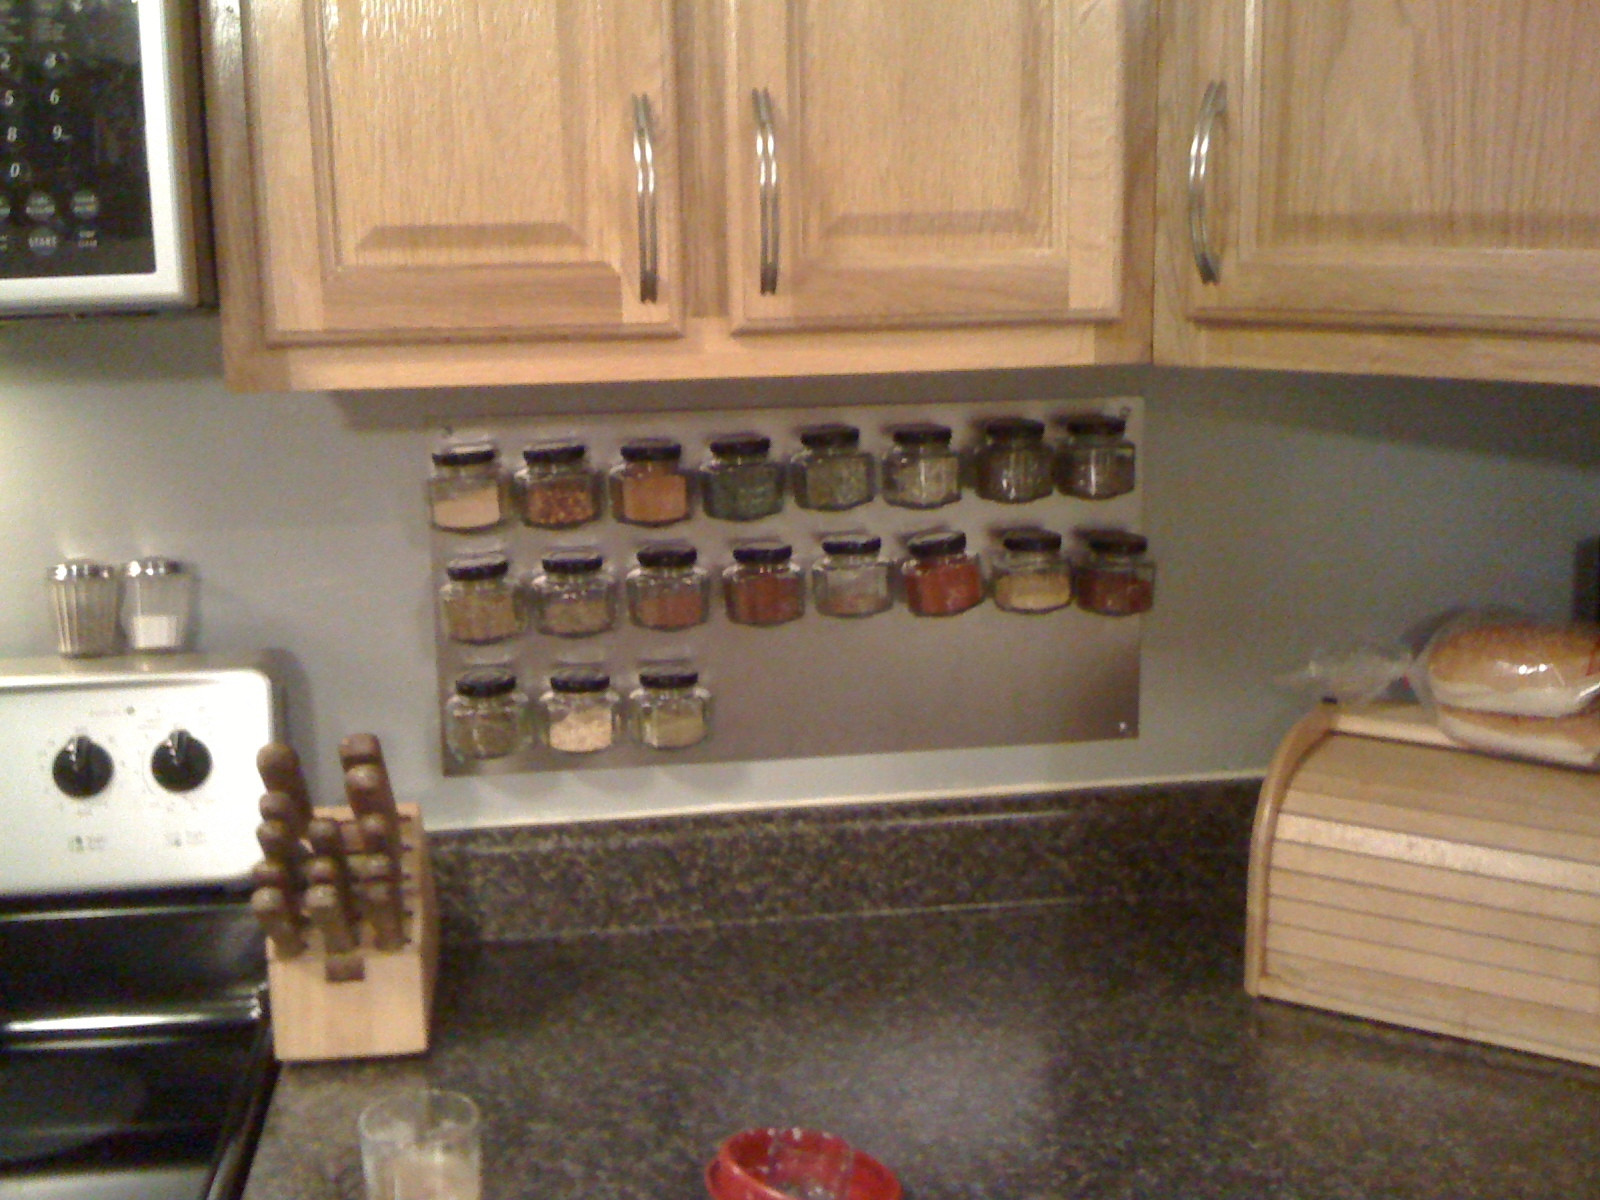 Best ideas about DIY Spice Organizer . Save or Pin DIY Magnetic Spice Rack Now.